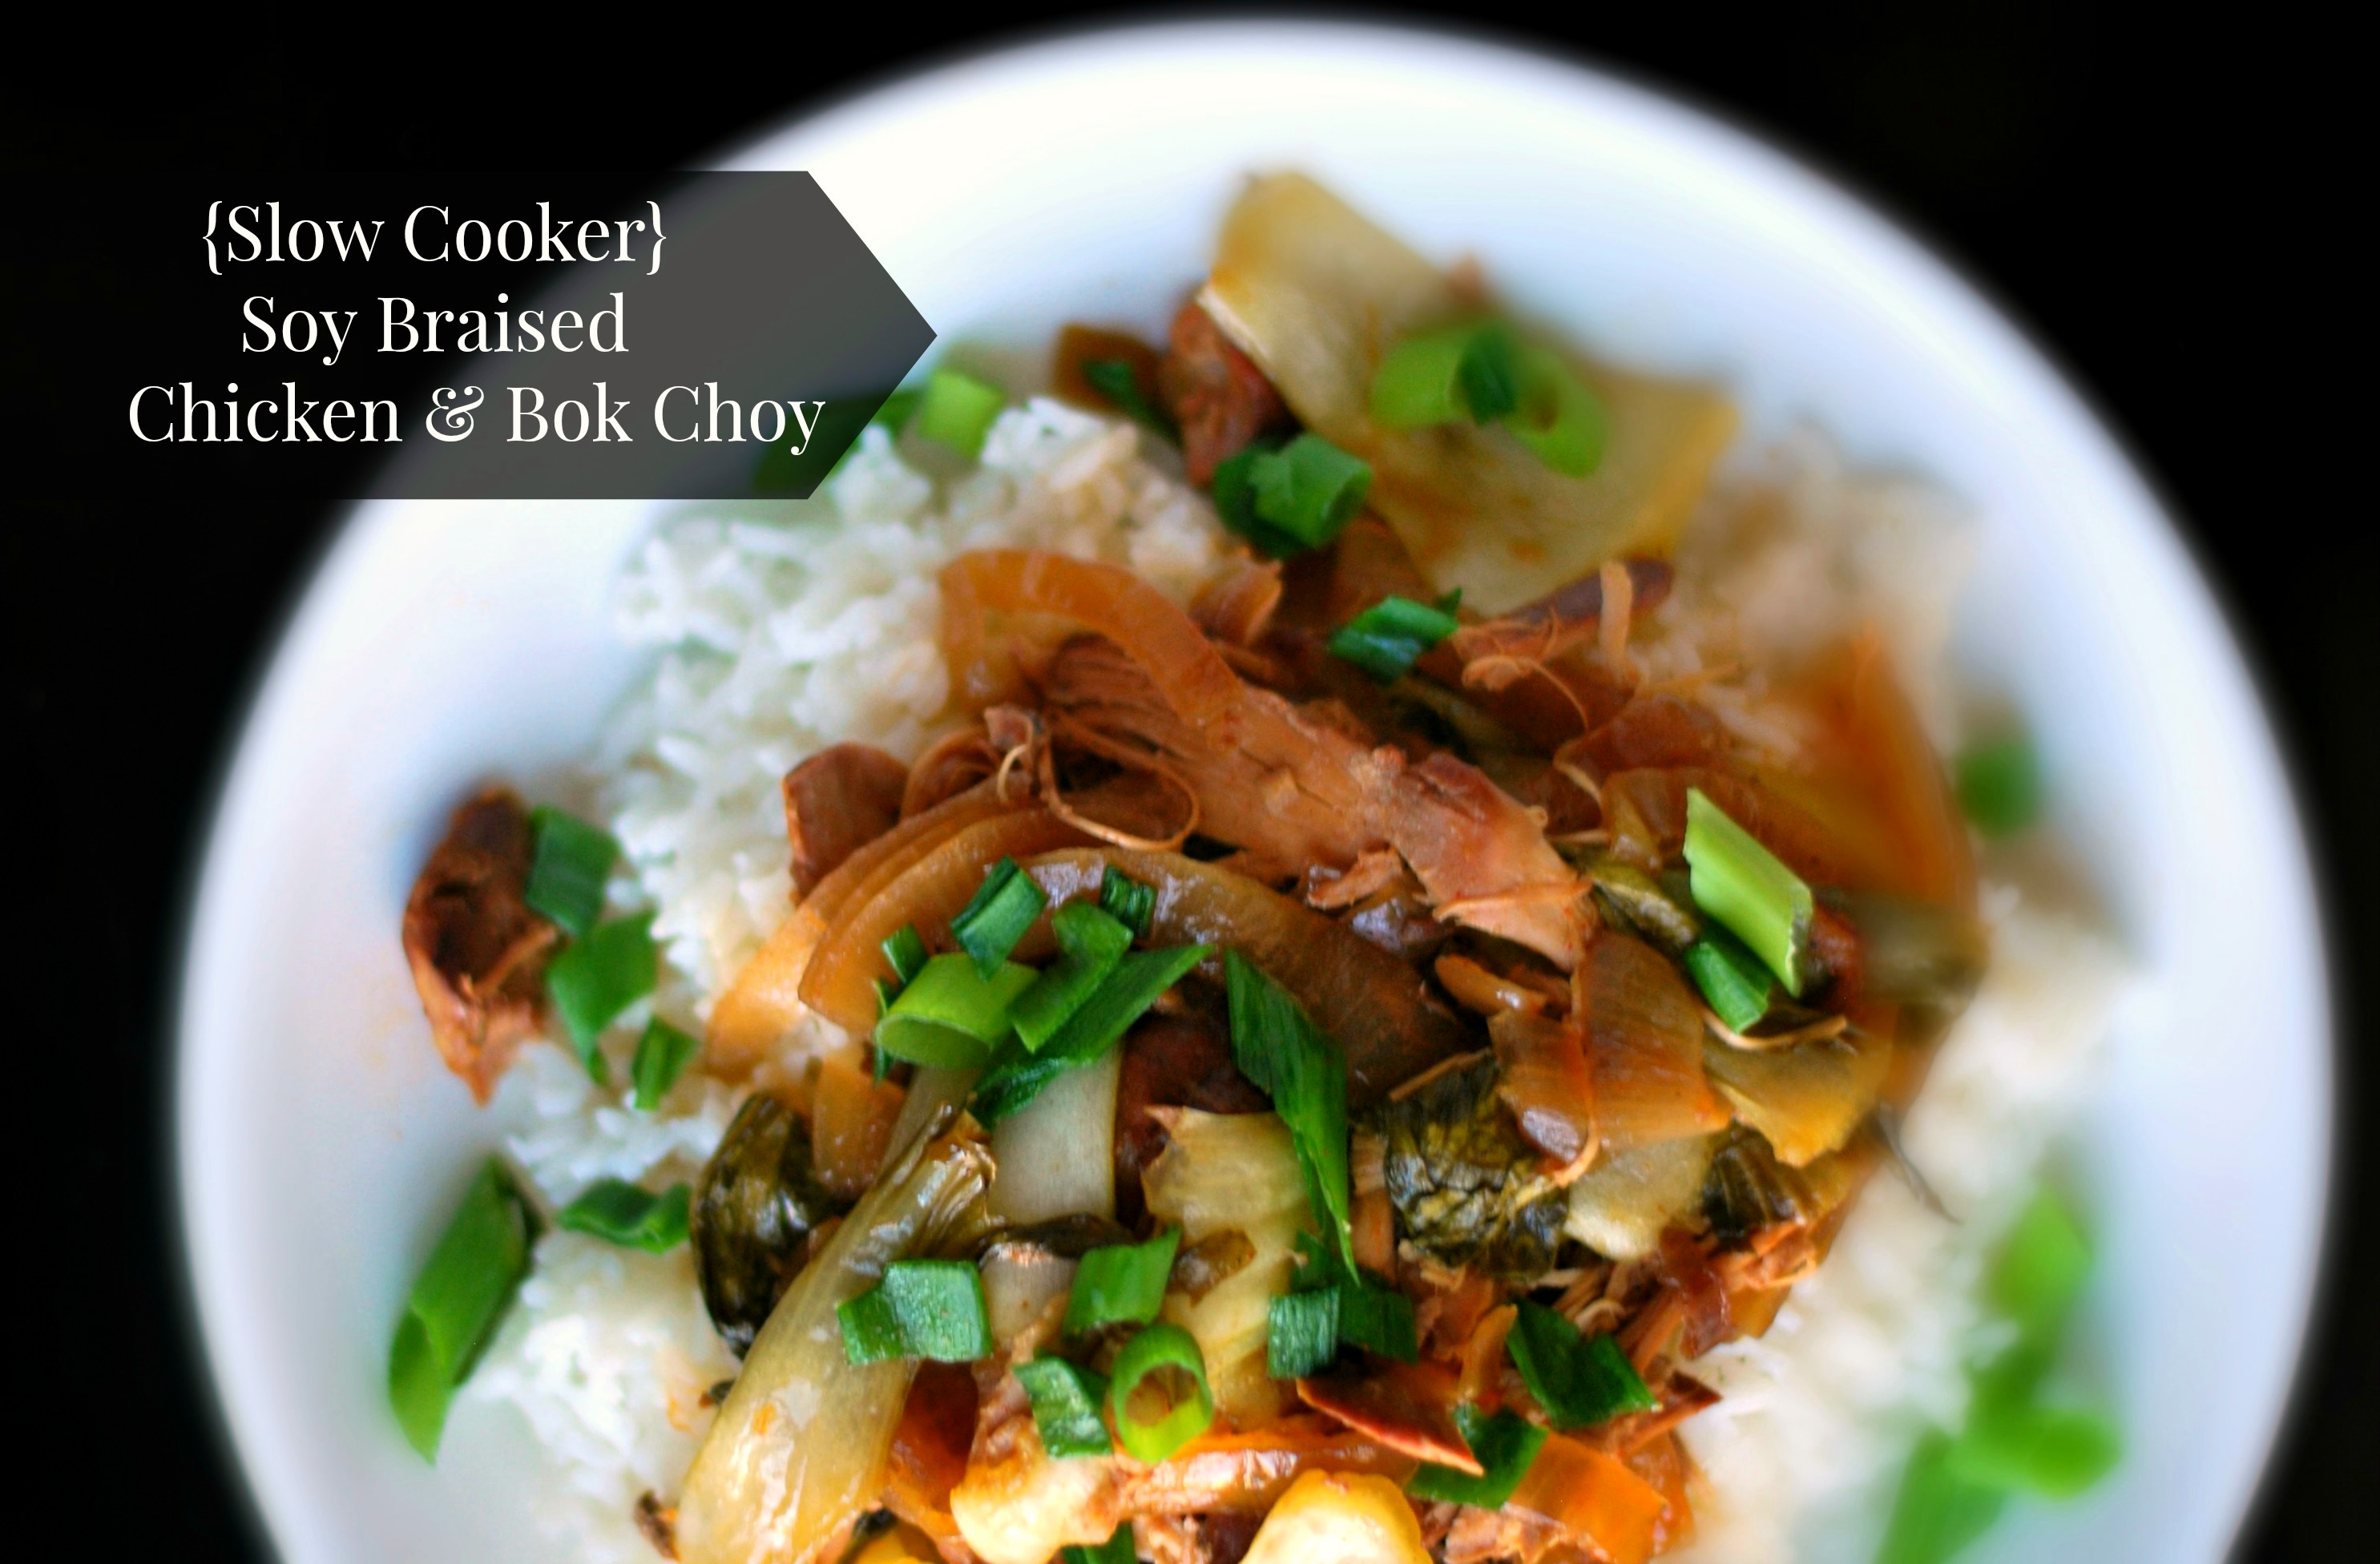 Slow Cooker Soy Braised Chicken & Bok Choy